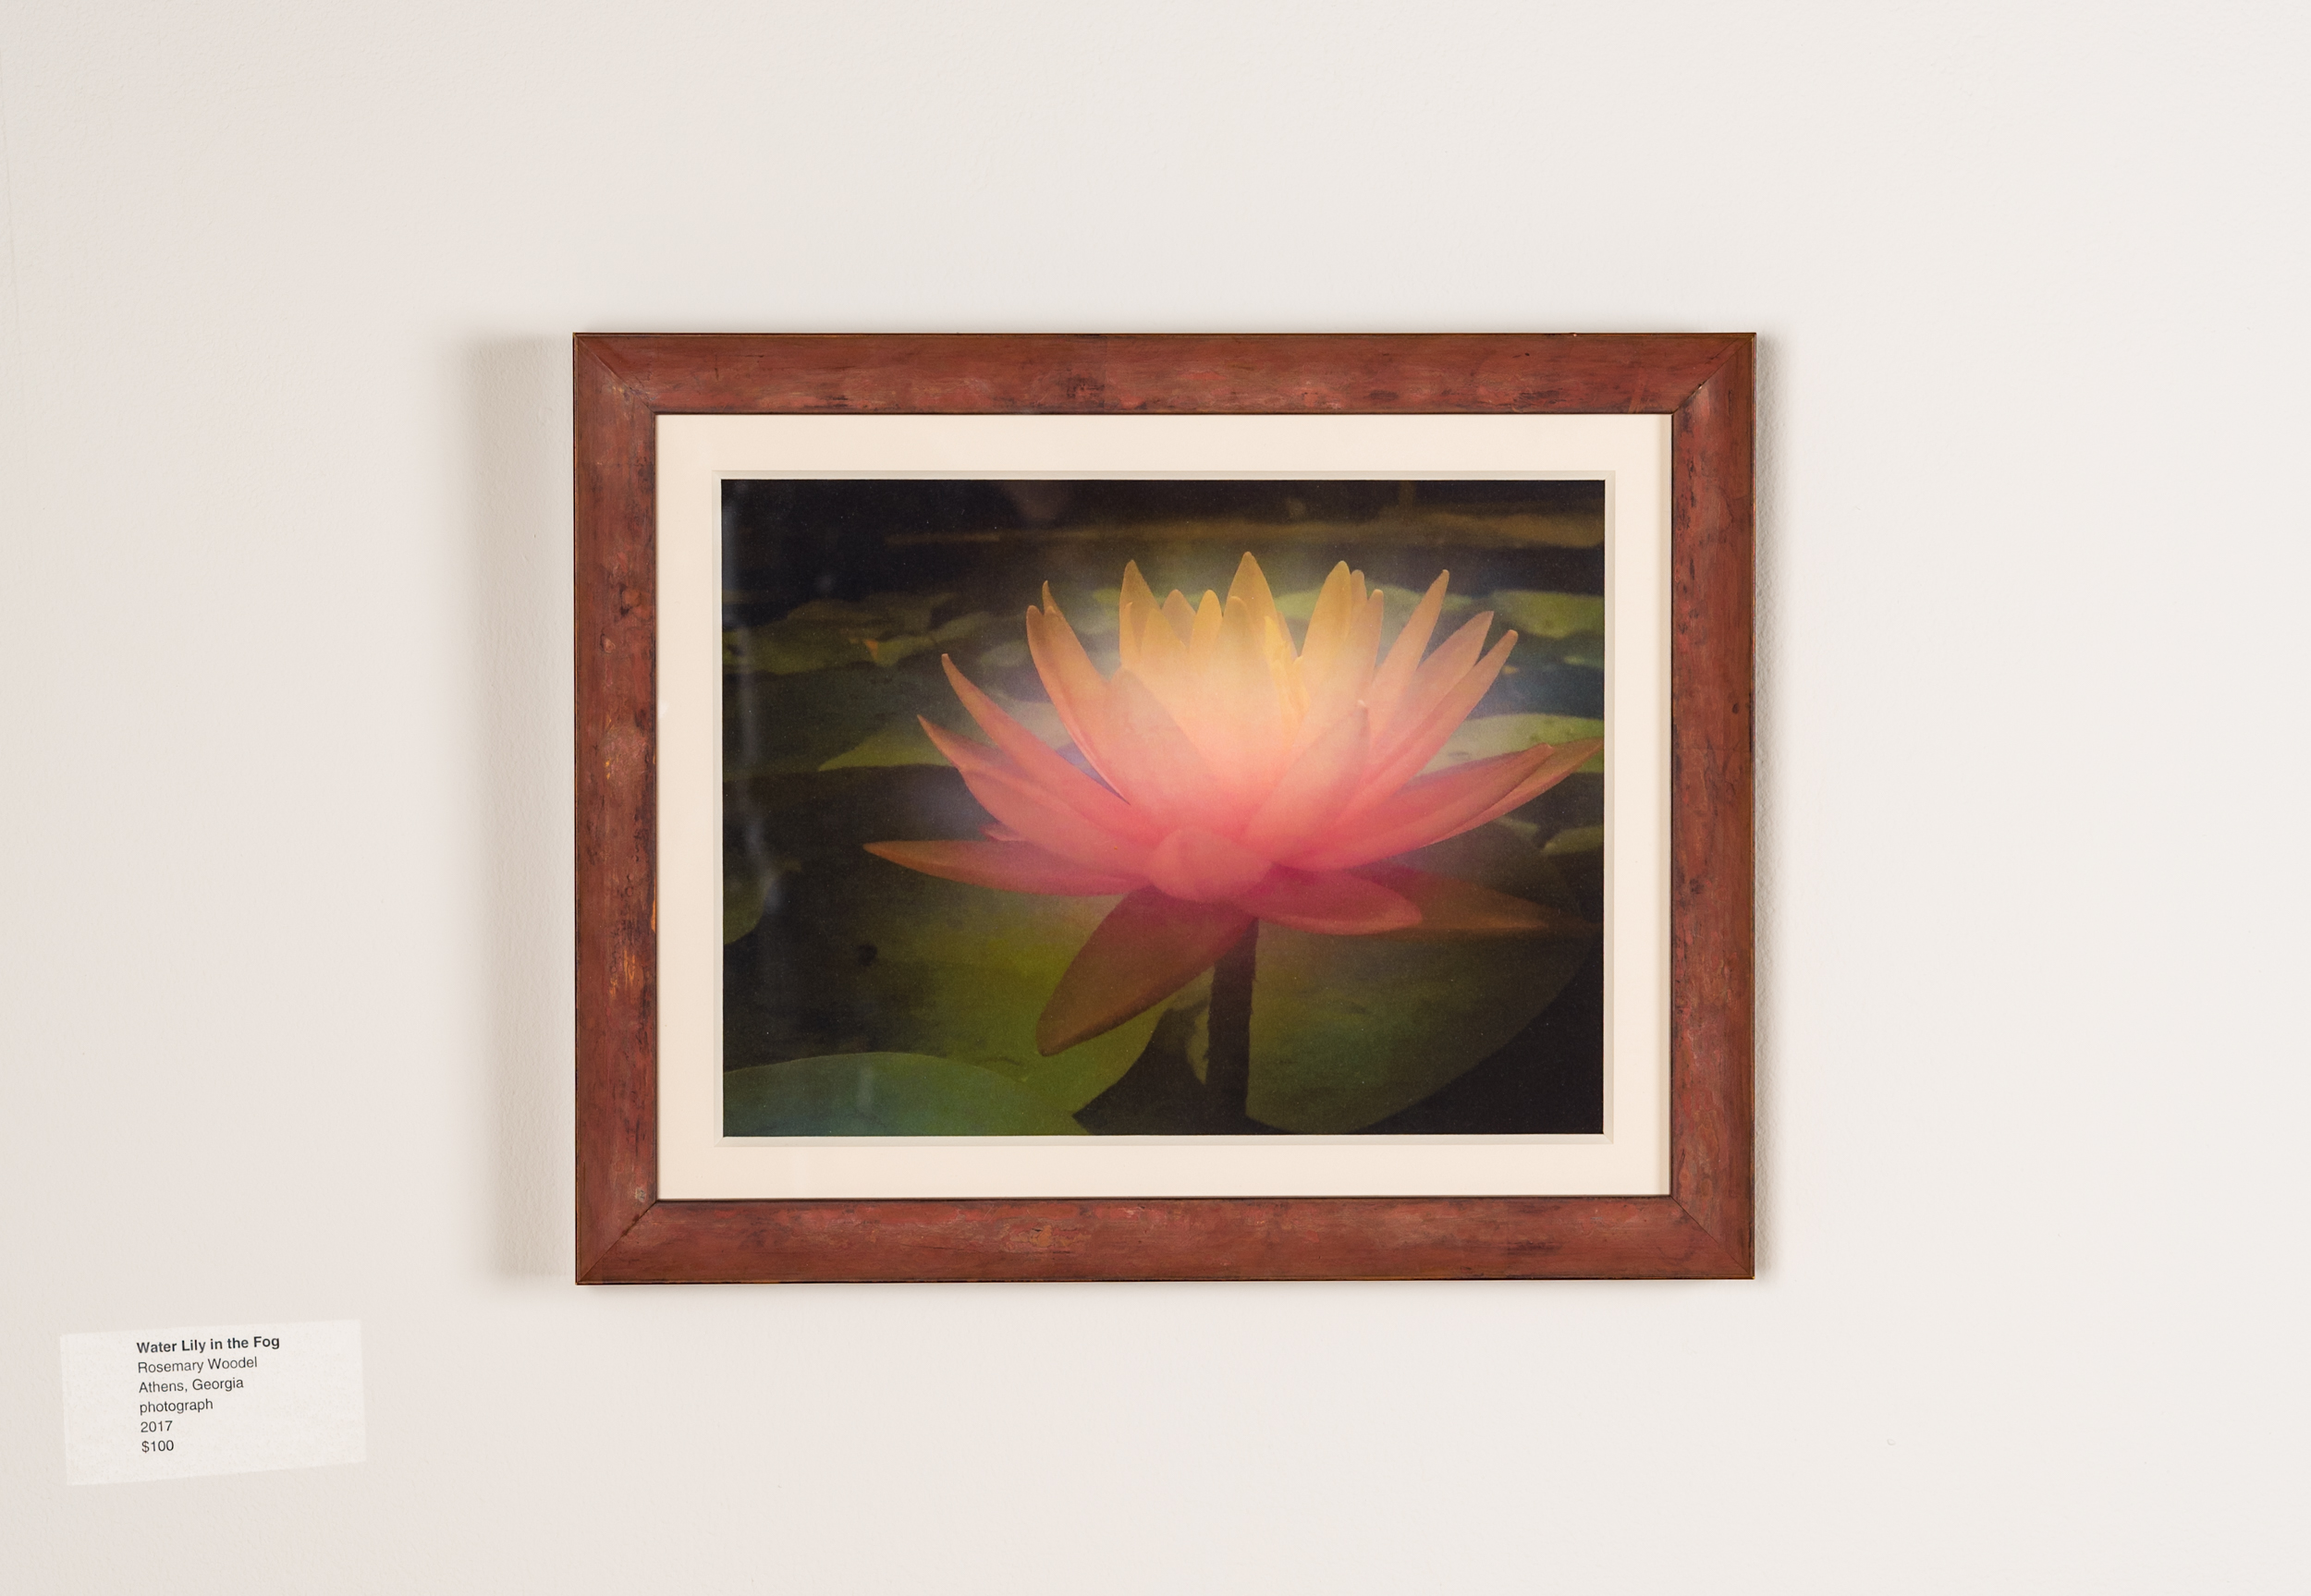 Water Lily in the Fog Rosemary Woodel  Athens  GA Photograph  2017 $100